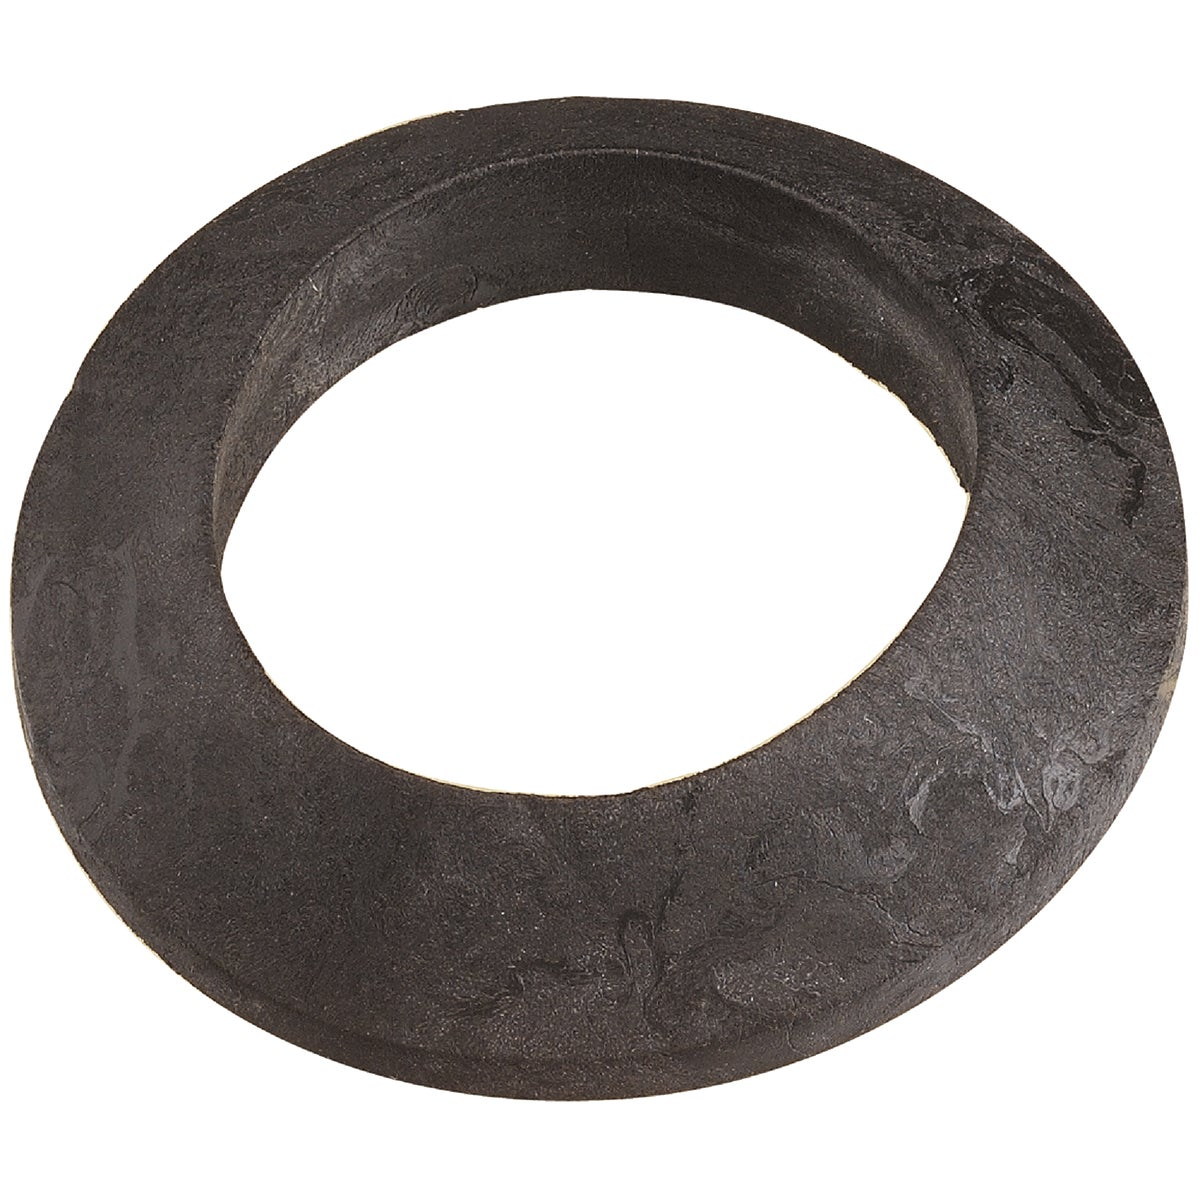 TANK/BOWL GASKET - 414518 by Plumb Pak/keeney Mfg